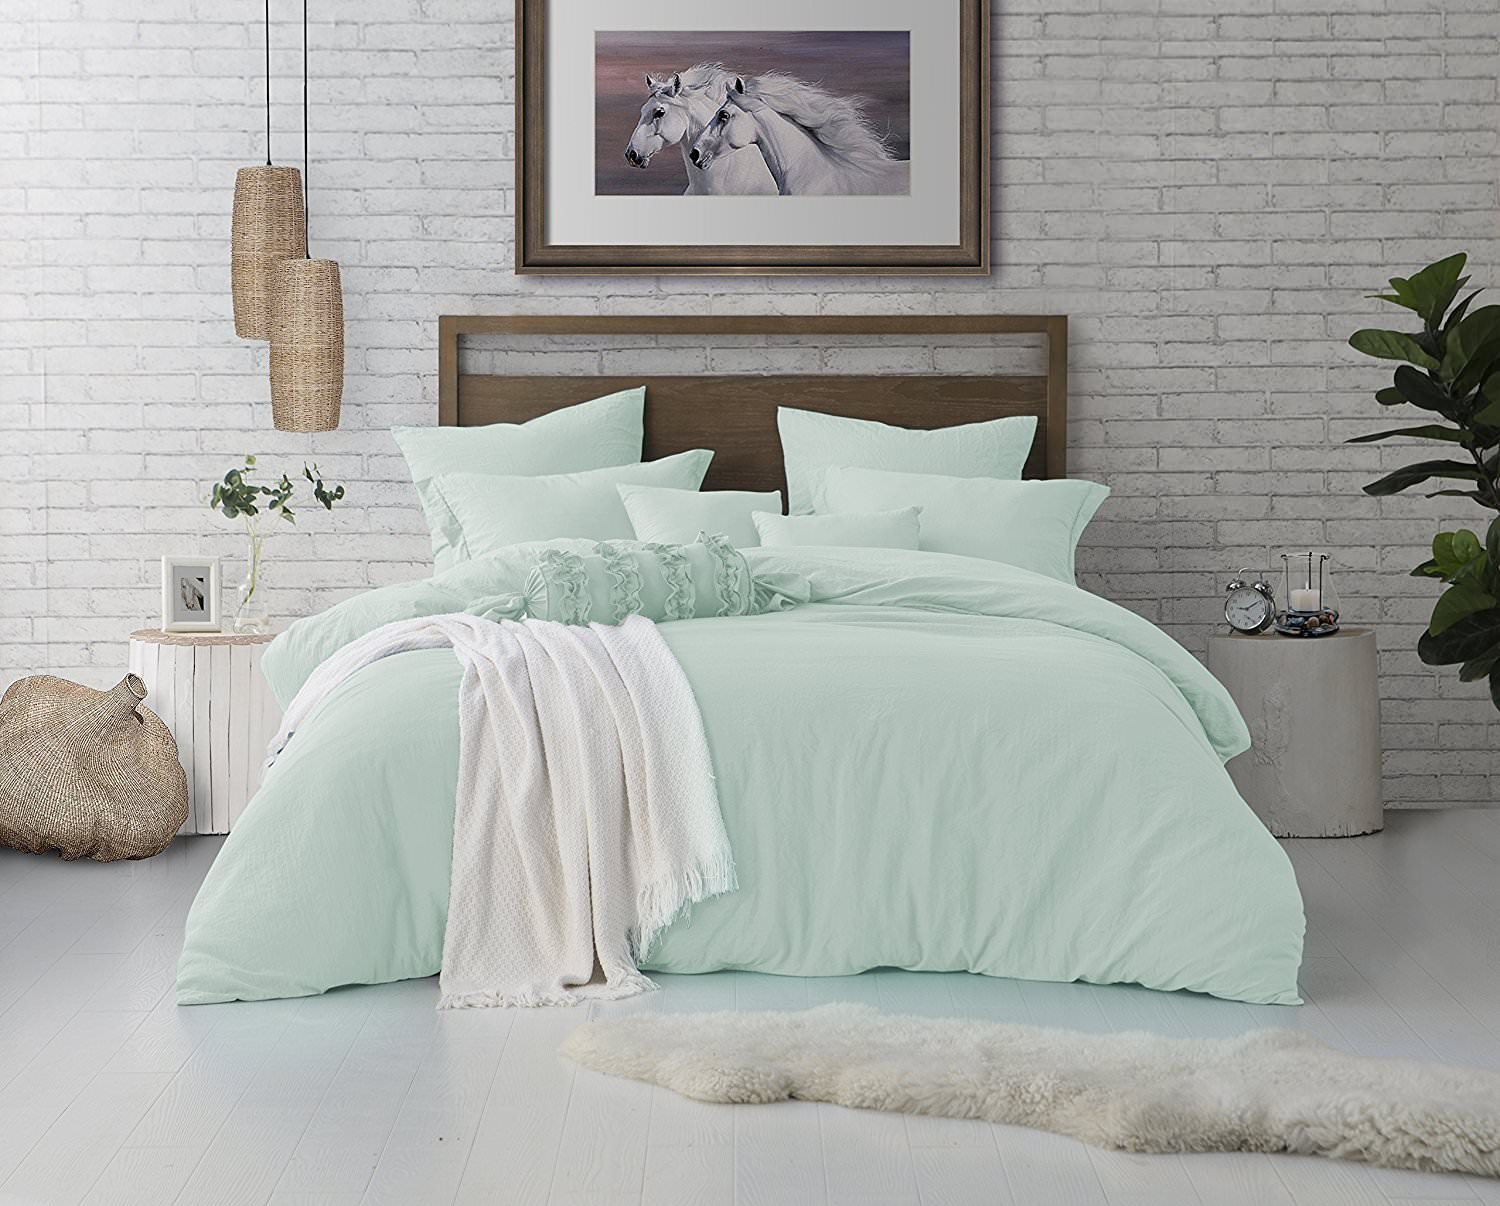 Allure Home Furnishing, 1000 TC, 3 Piece Duvet/Comforter Cover, Protects and Covers Your Comforter/Duvet Insert, Luxury Microfiber, Includes 2 Pillow Shams, King, Mint Blue